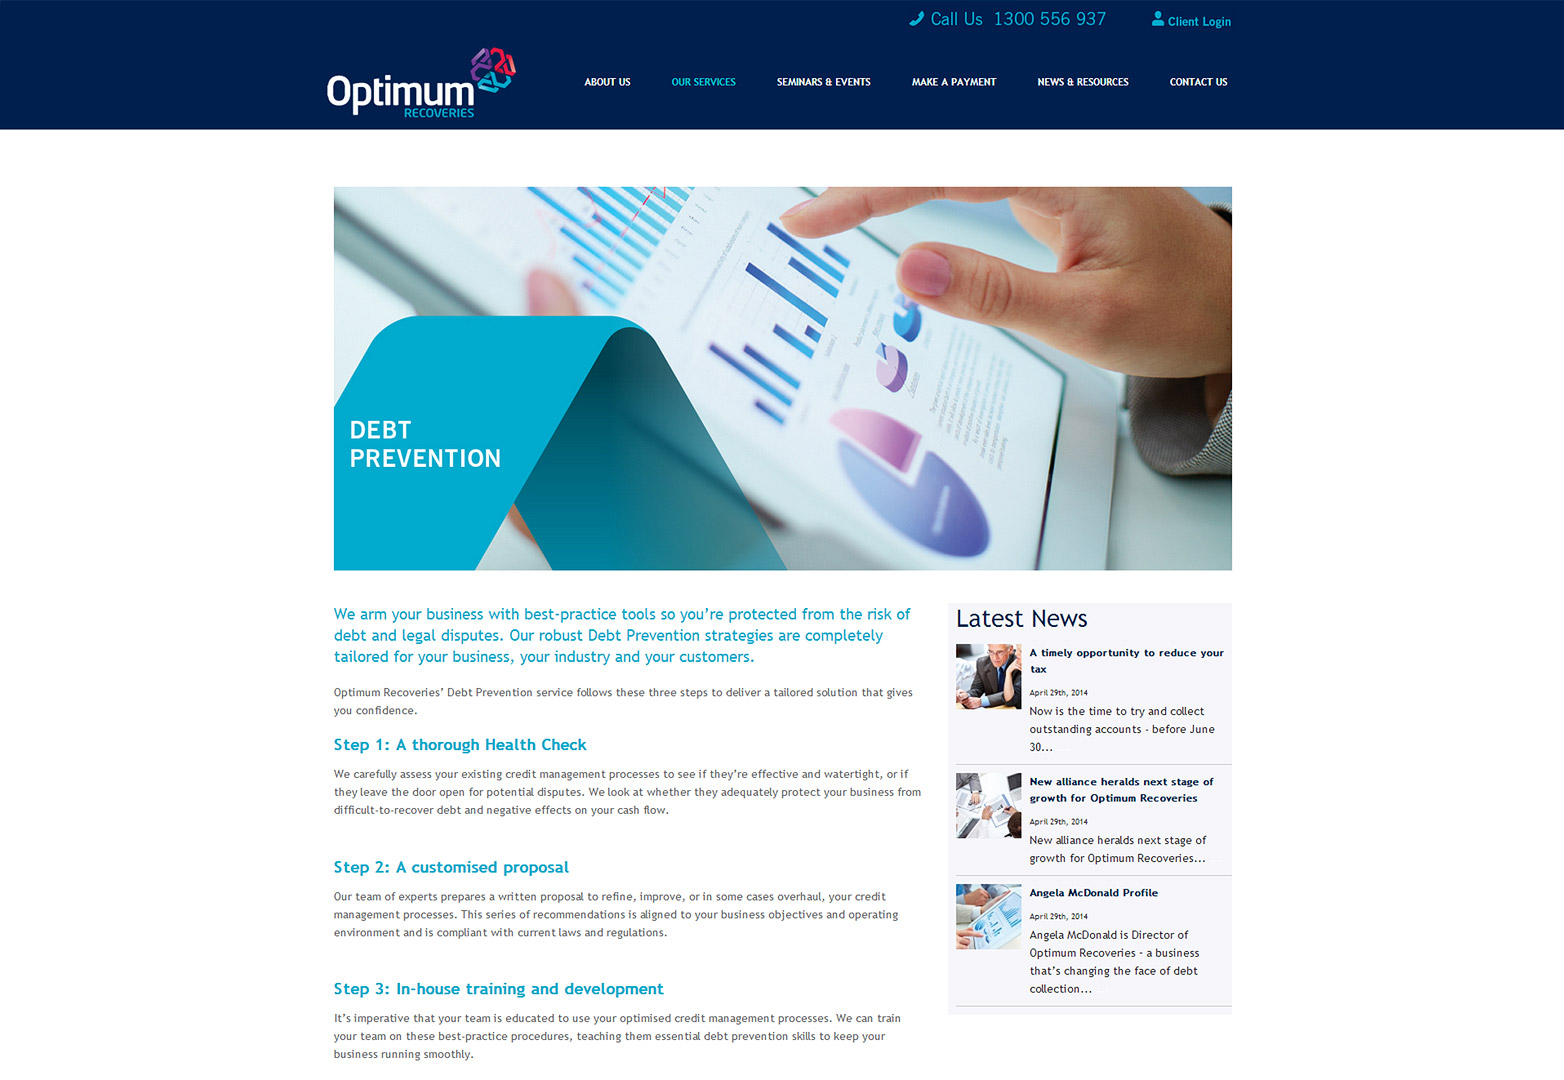 Optimum Our Services page